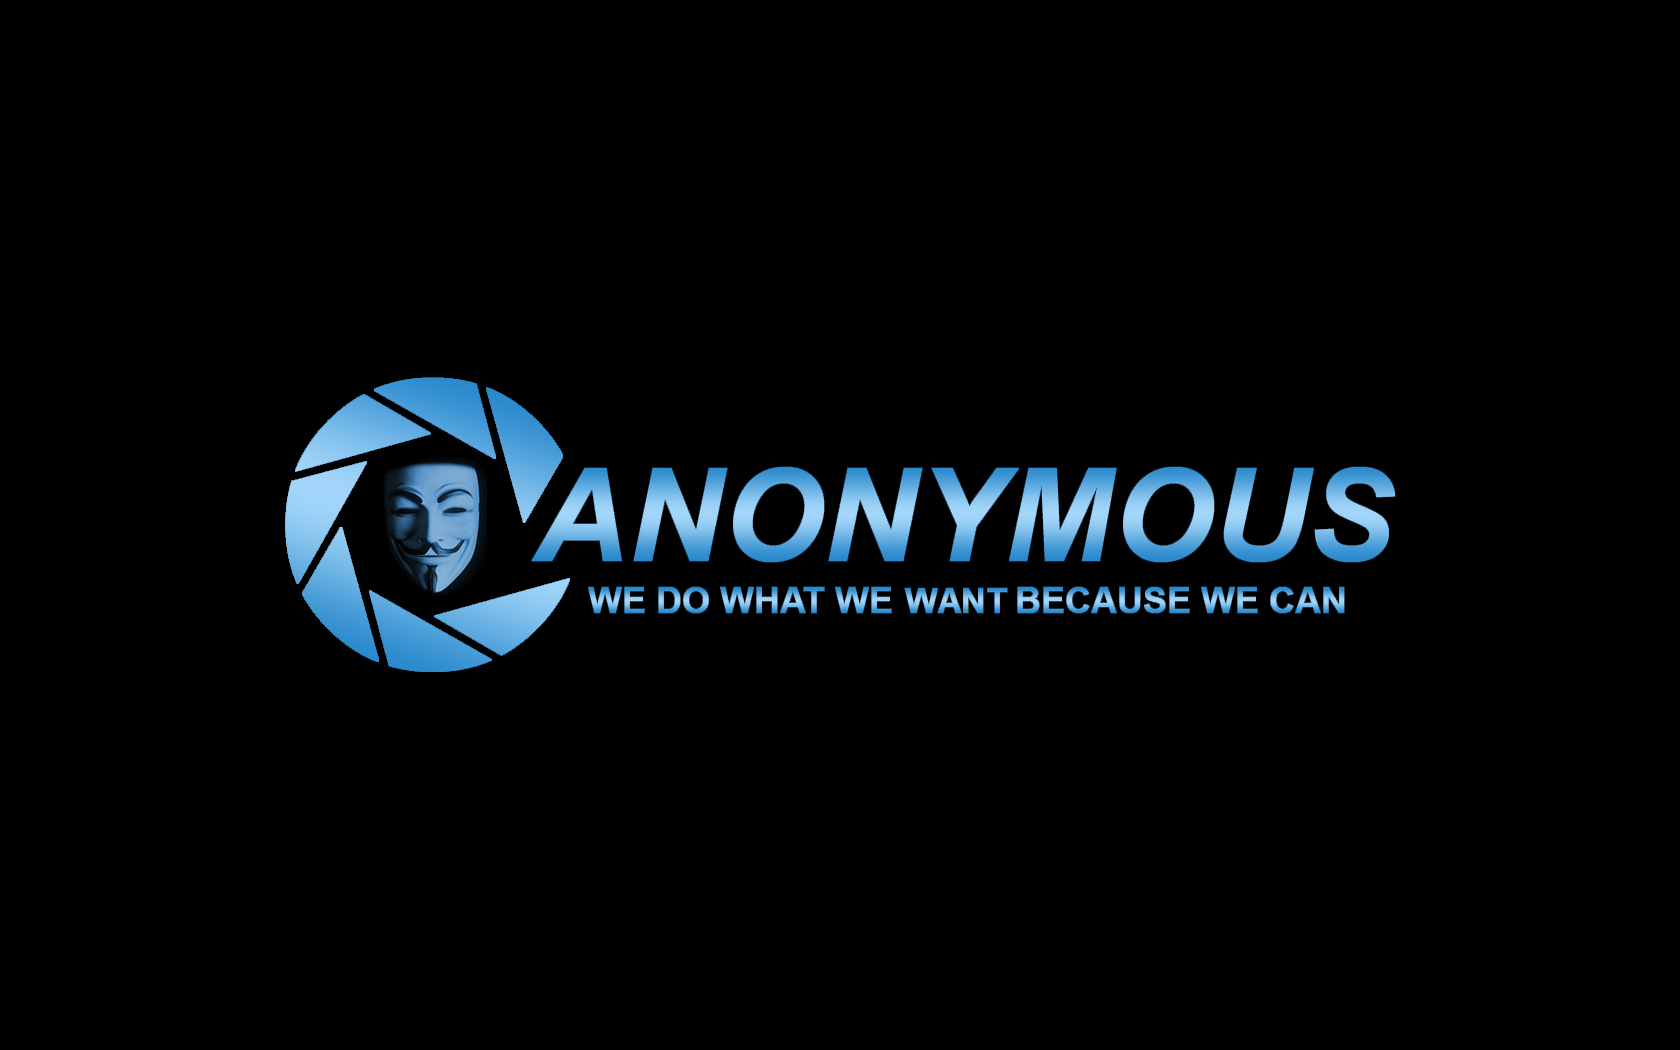 Anonymous Wallpaper and Background | 1680x1050 | ID:55151